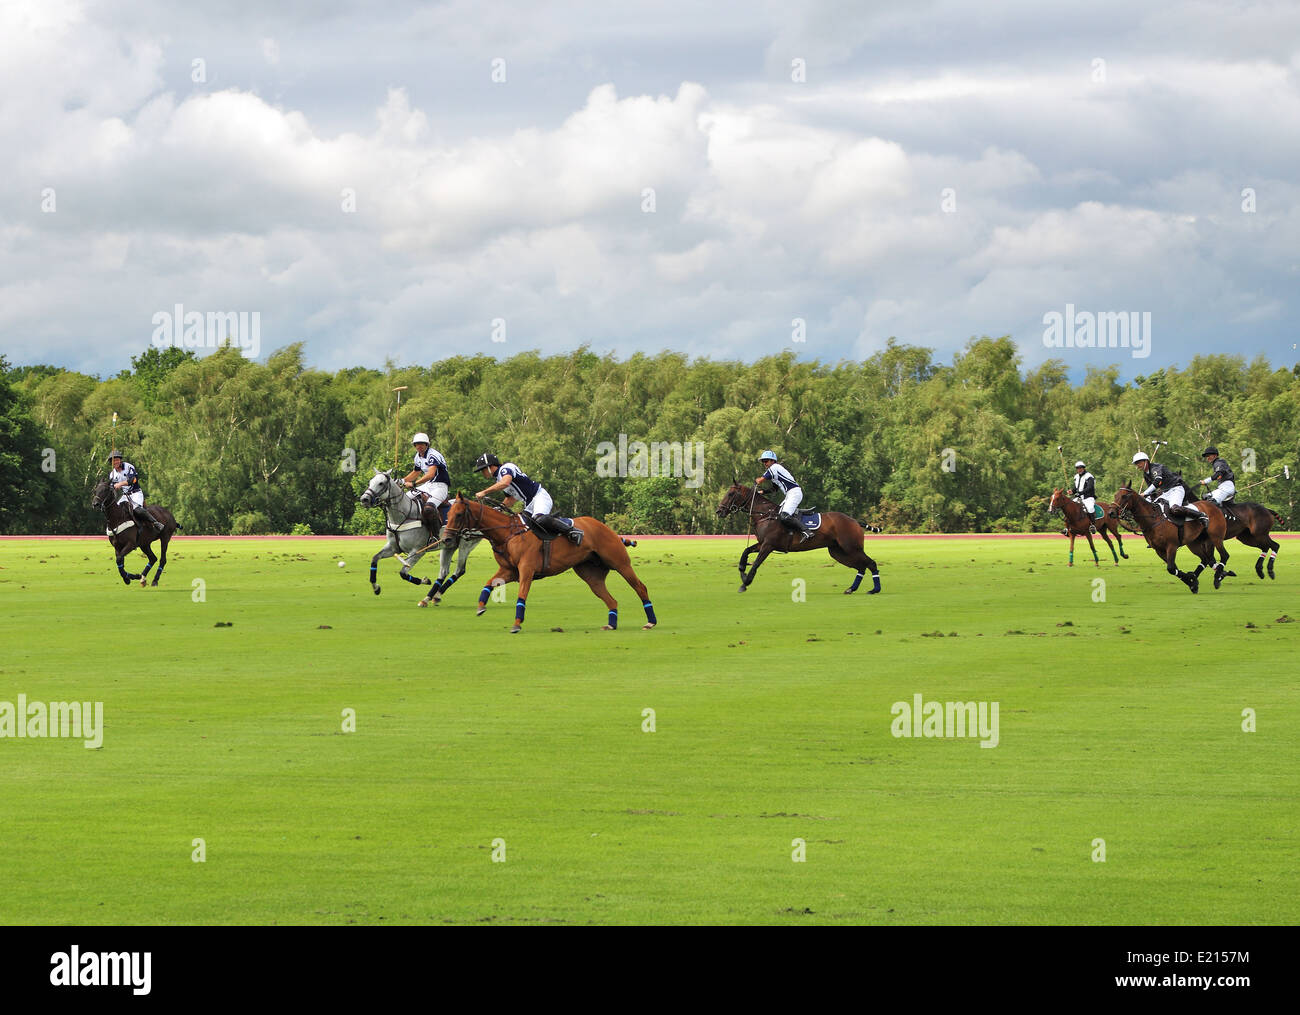 Game of Polo in an English Park - Stock Image